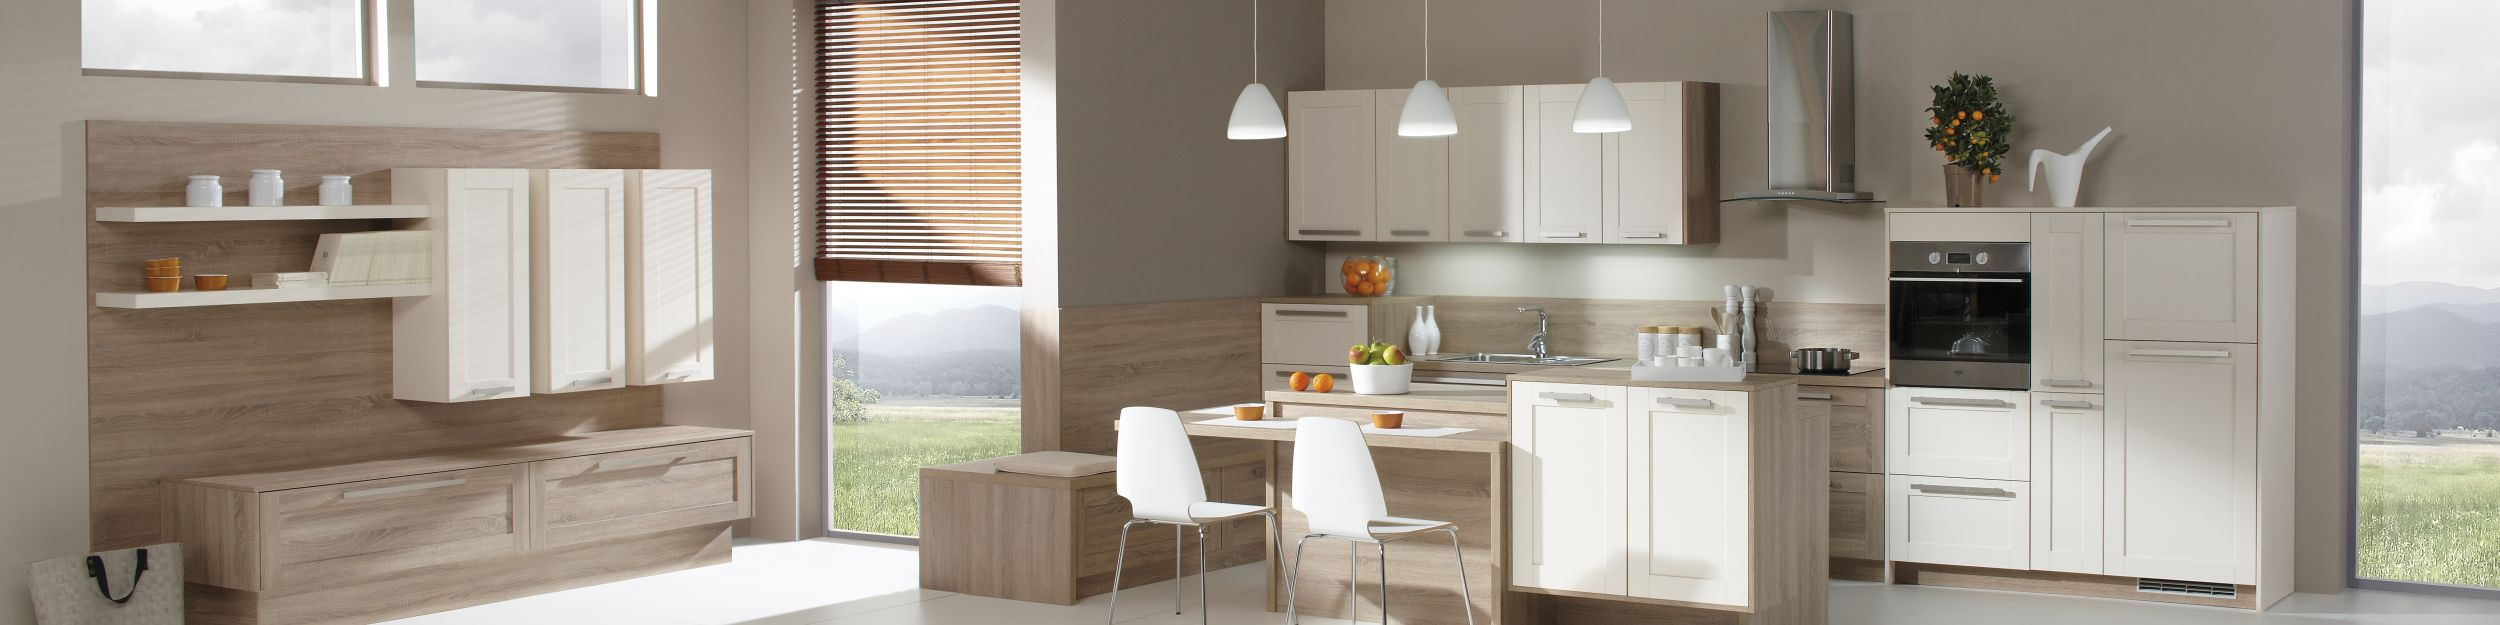 http://static14.gorenje.com/imagelib/title_bg-narrow/default/products/Kitchens/modern/Livia/Livia%201.jpg